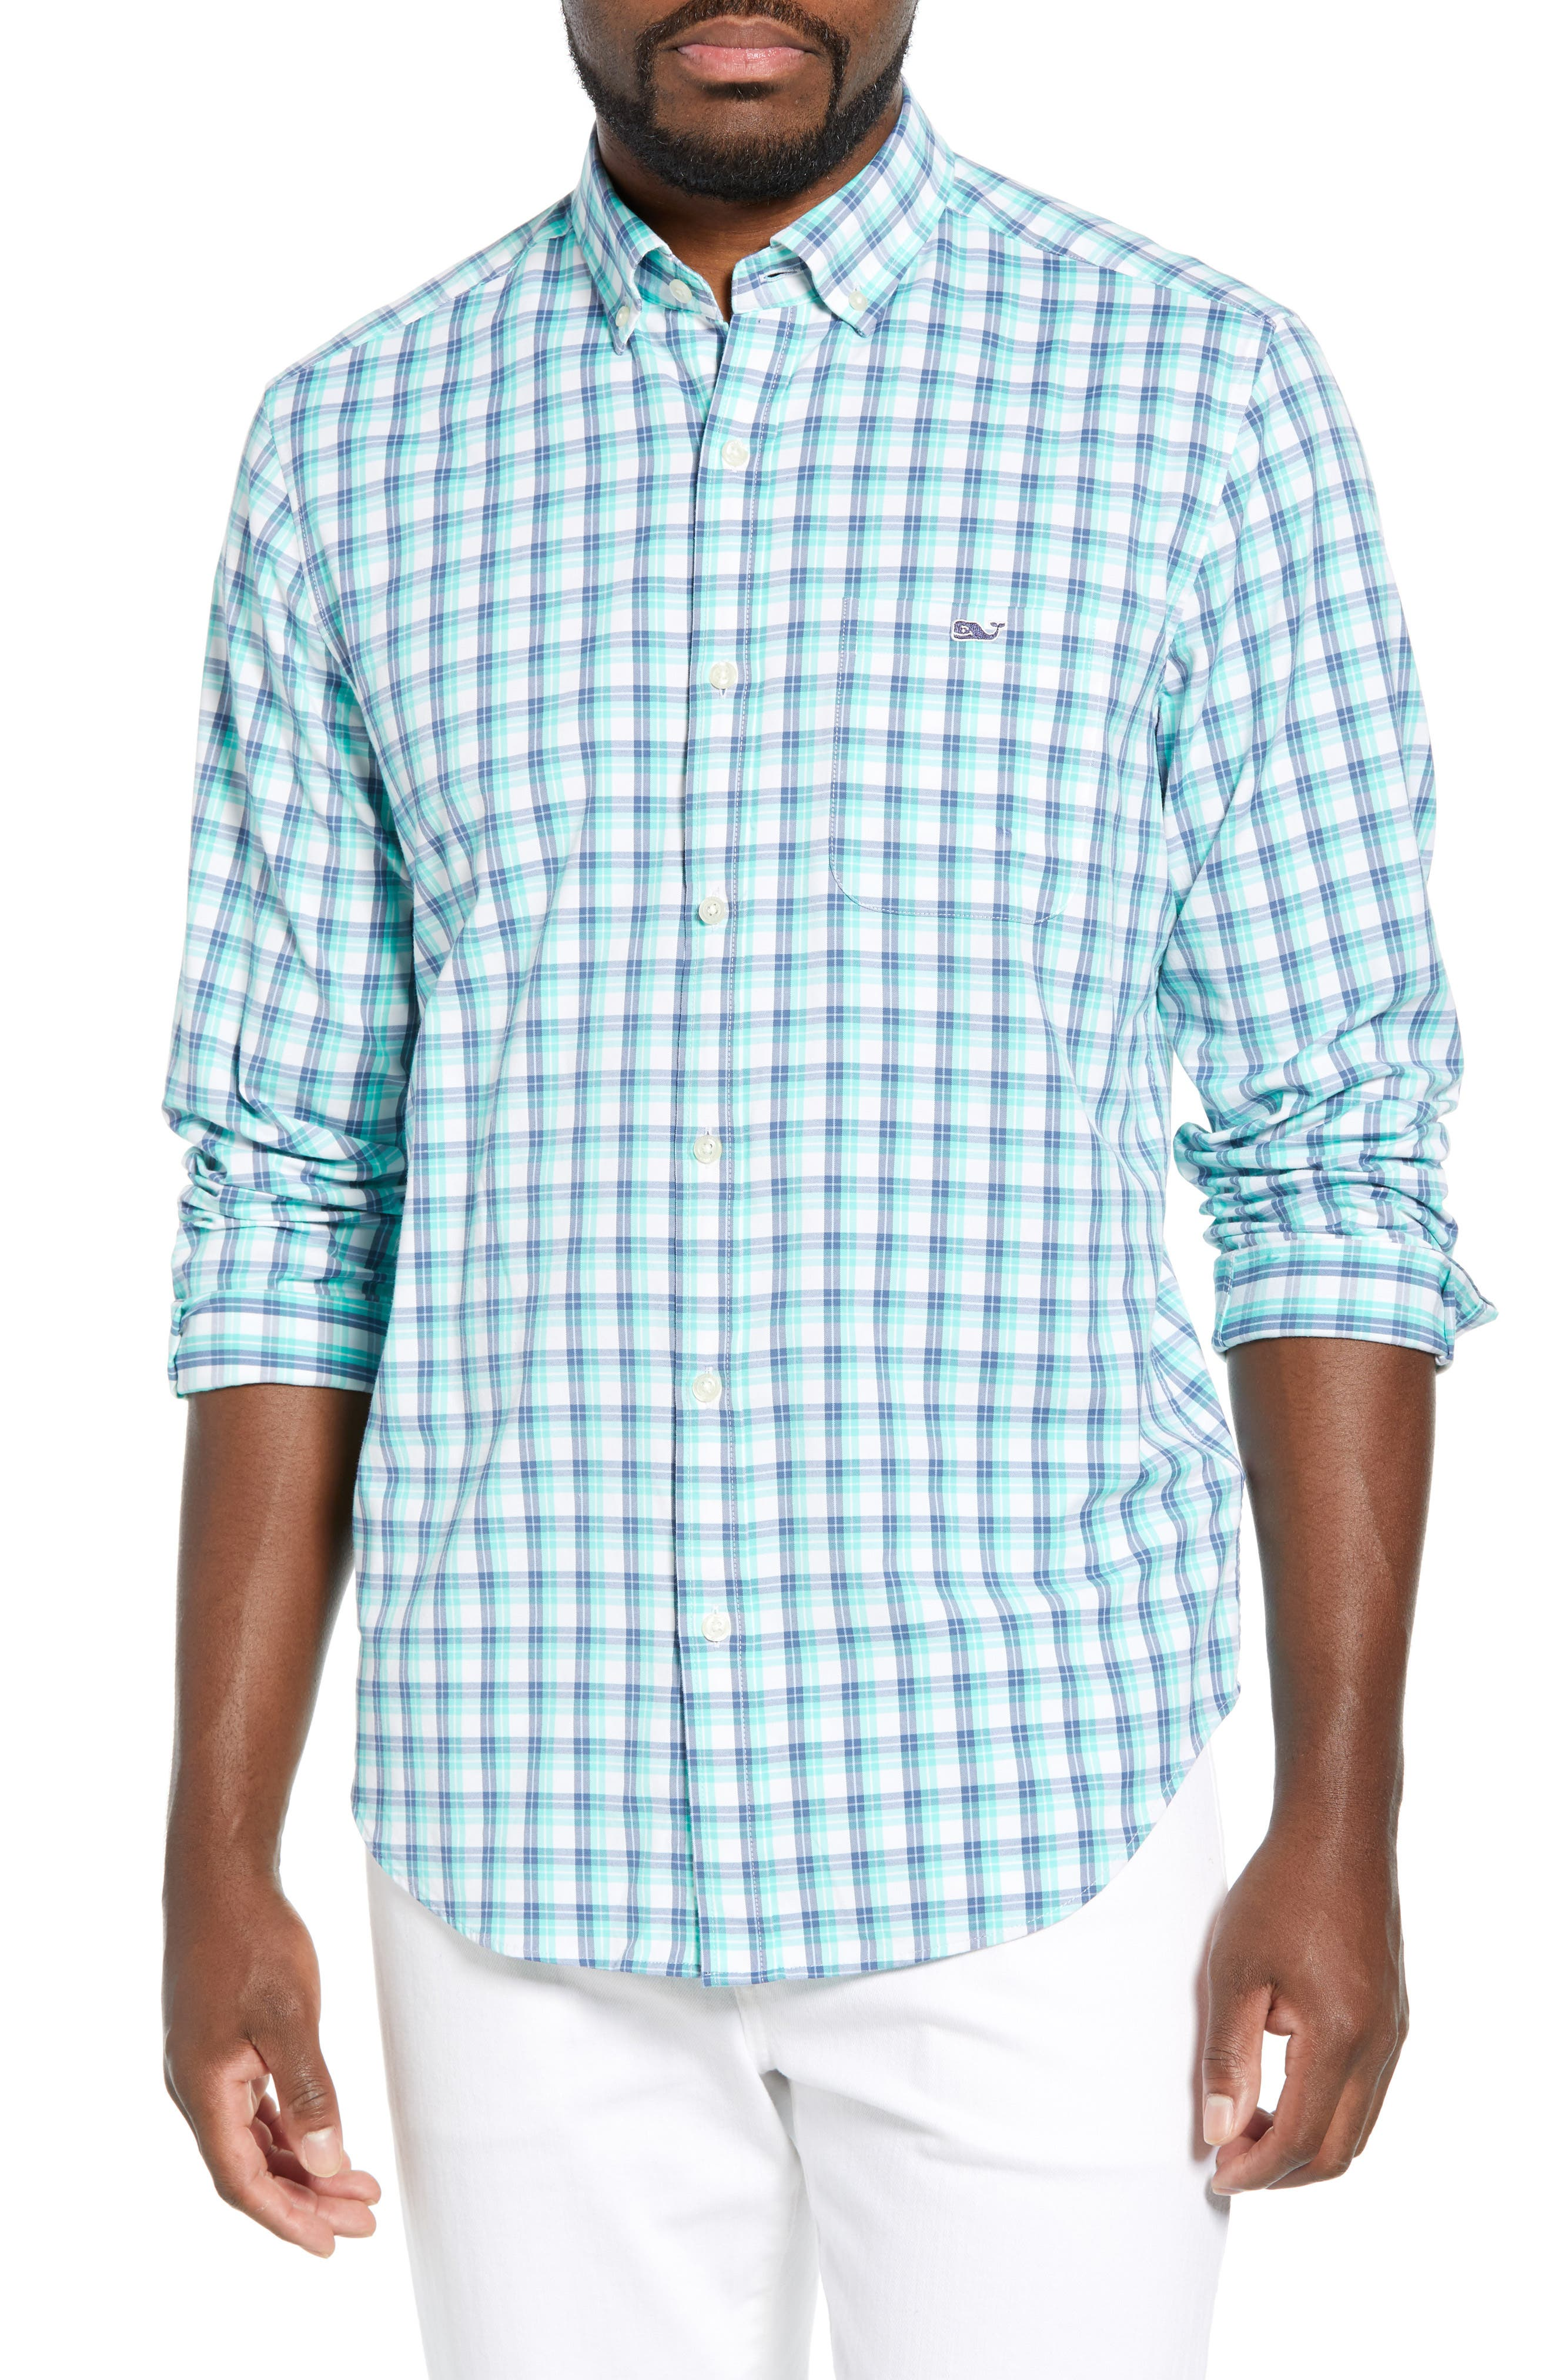 VINEYARD VINES,                             South Street Tucker Slim Fit Sport Shirt,                             Main thumbnail 1, color,                             CAPRI BLUE